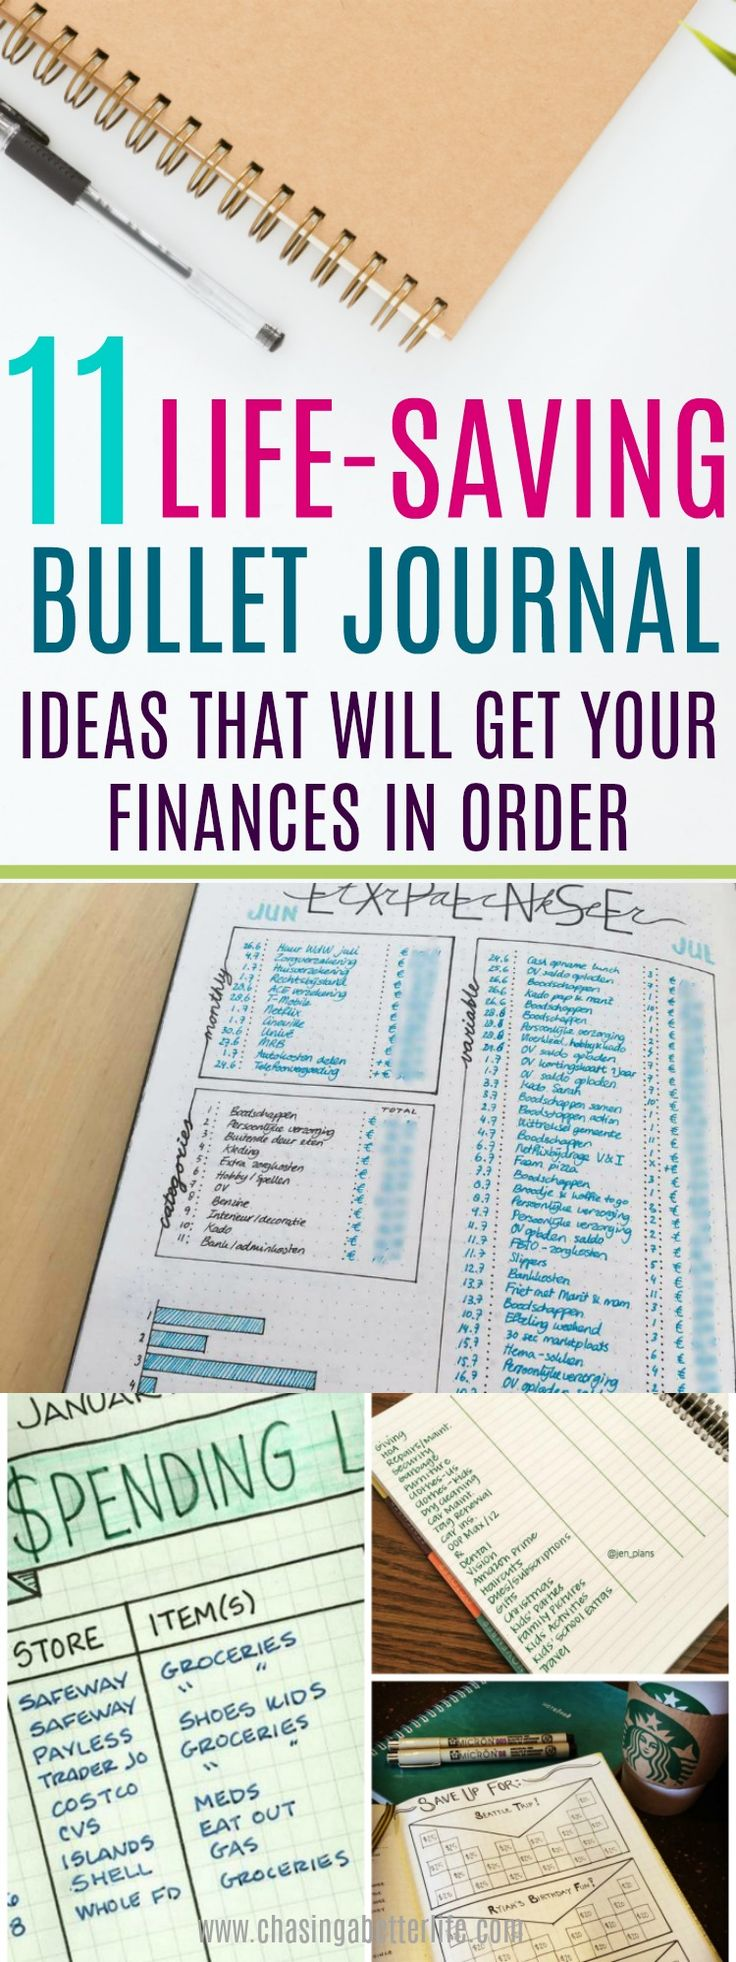 These will totally help me get my finances in order! I can't wait to incorporate these into my bullet journal.